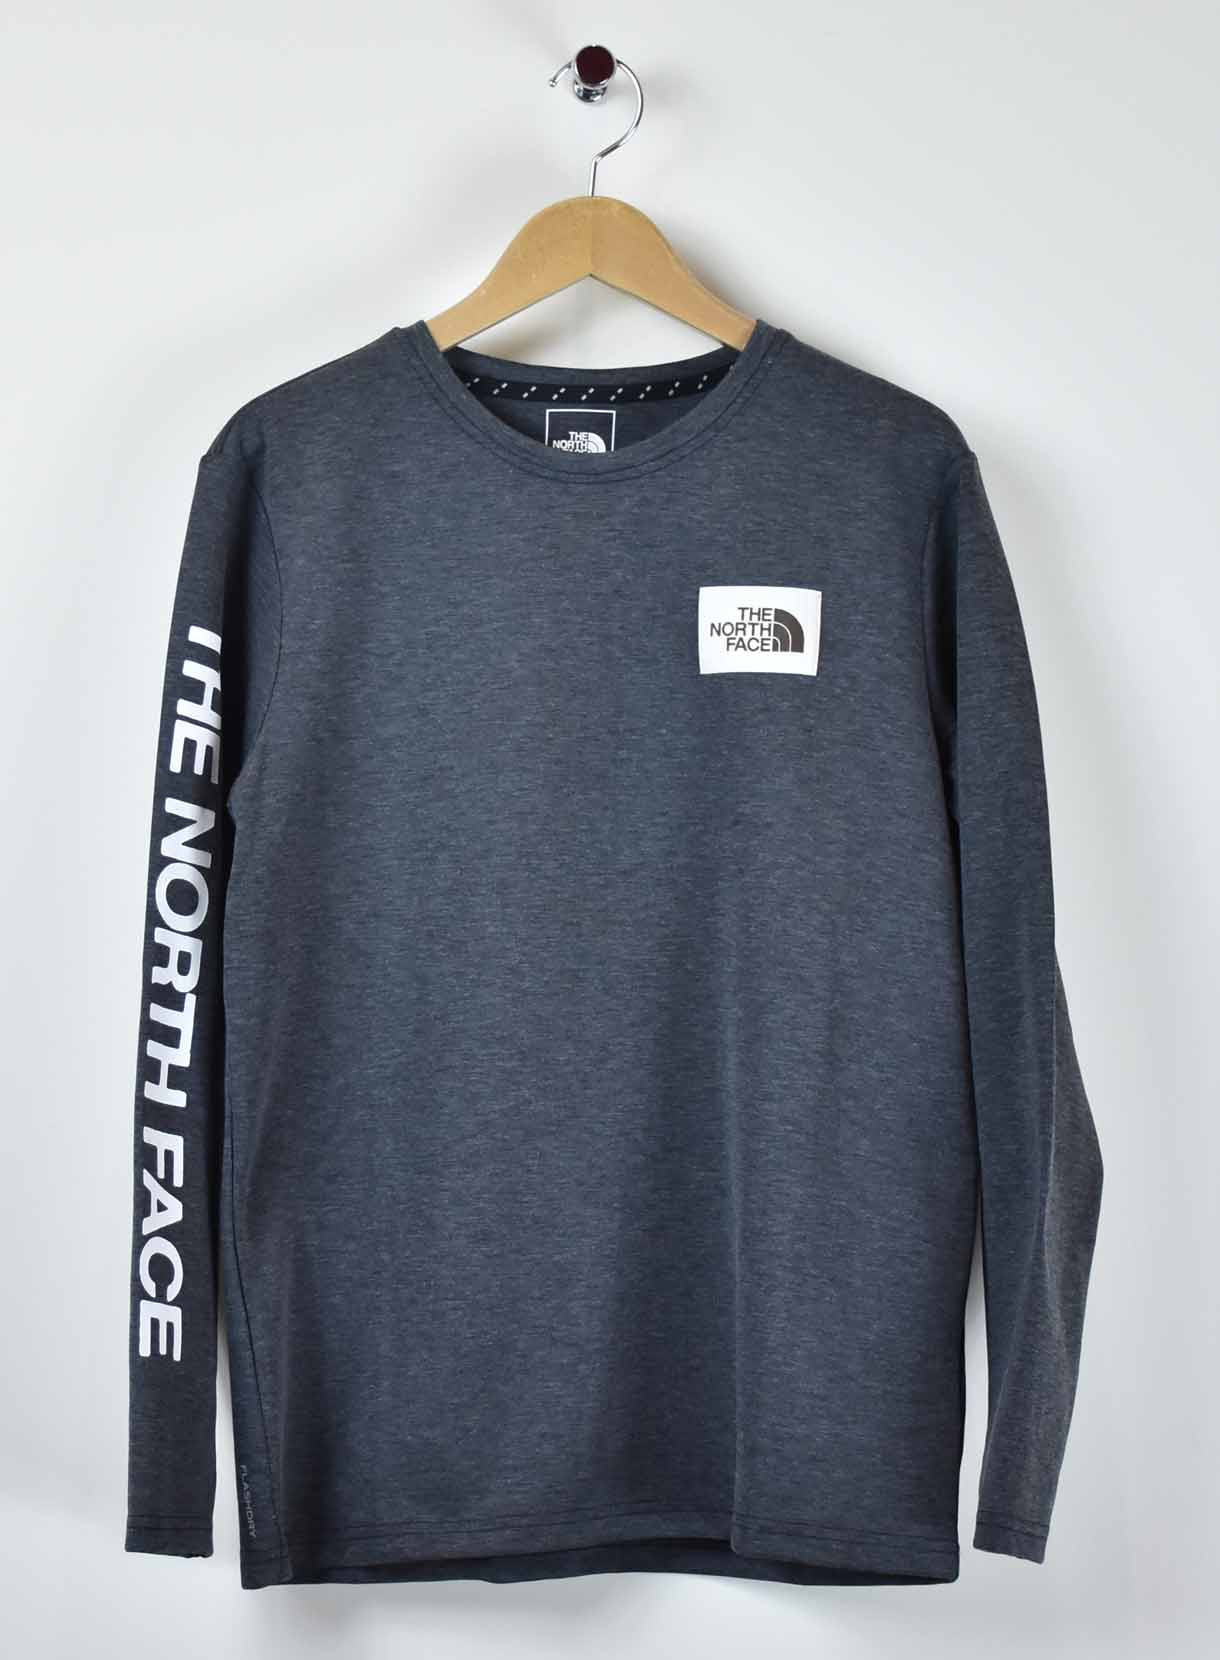 THE NORTHFACE 袖プリントTシャツ